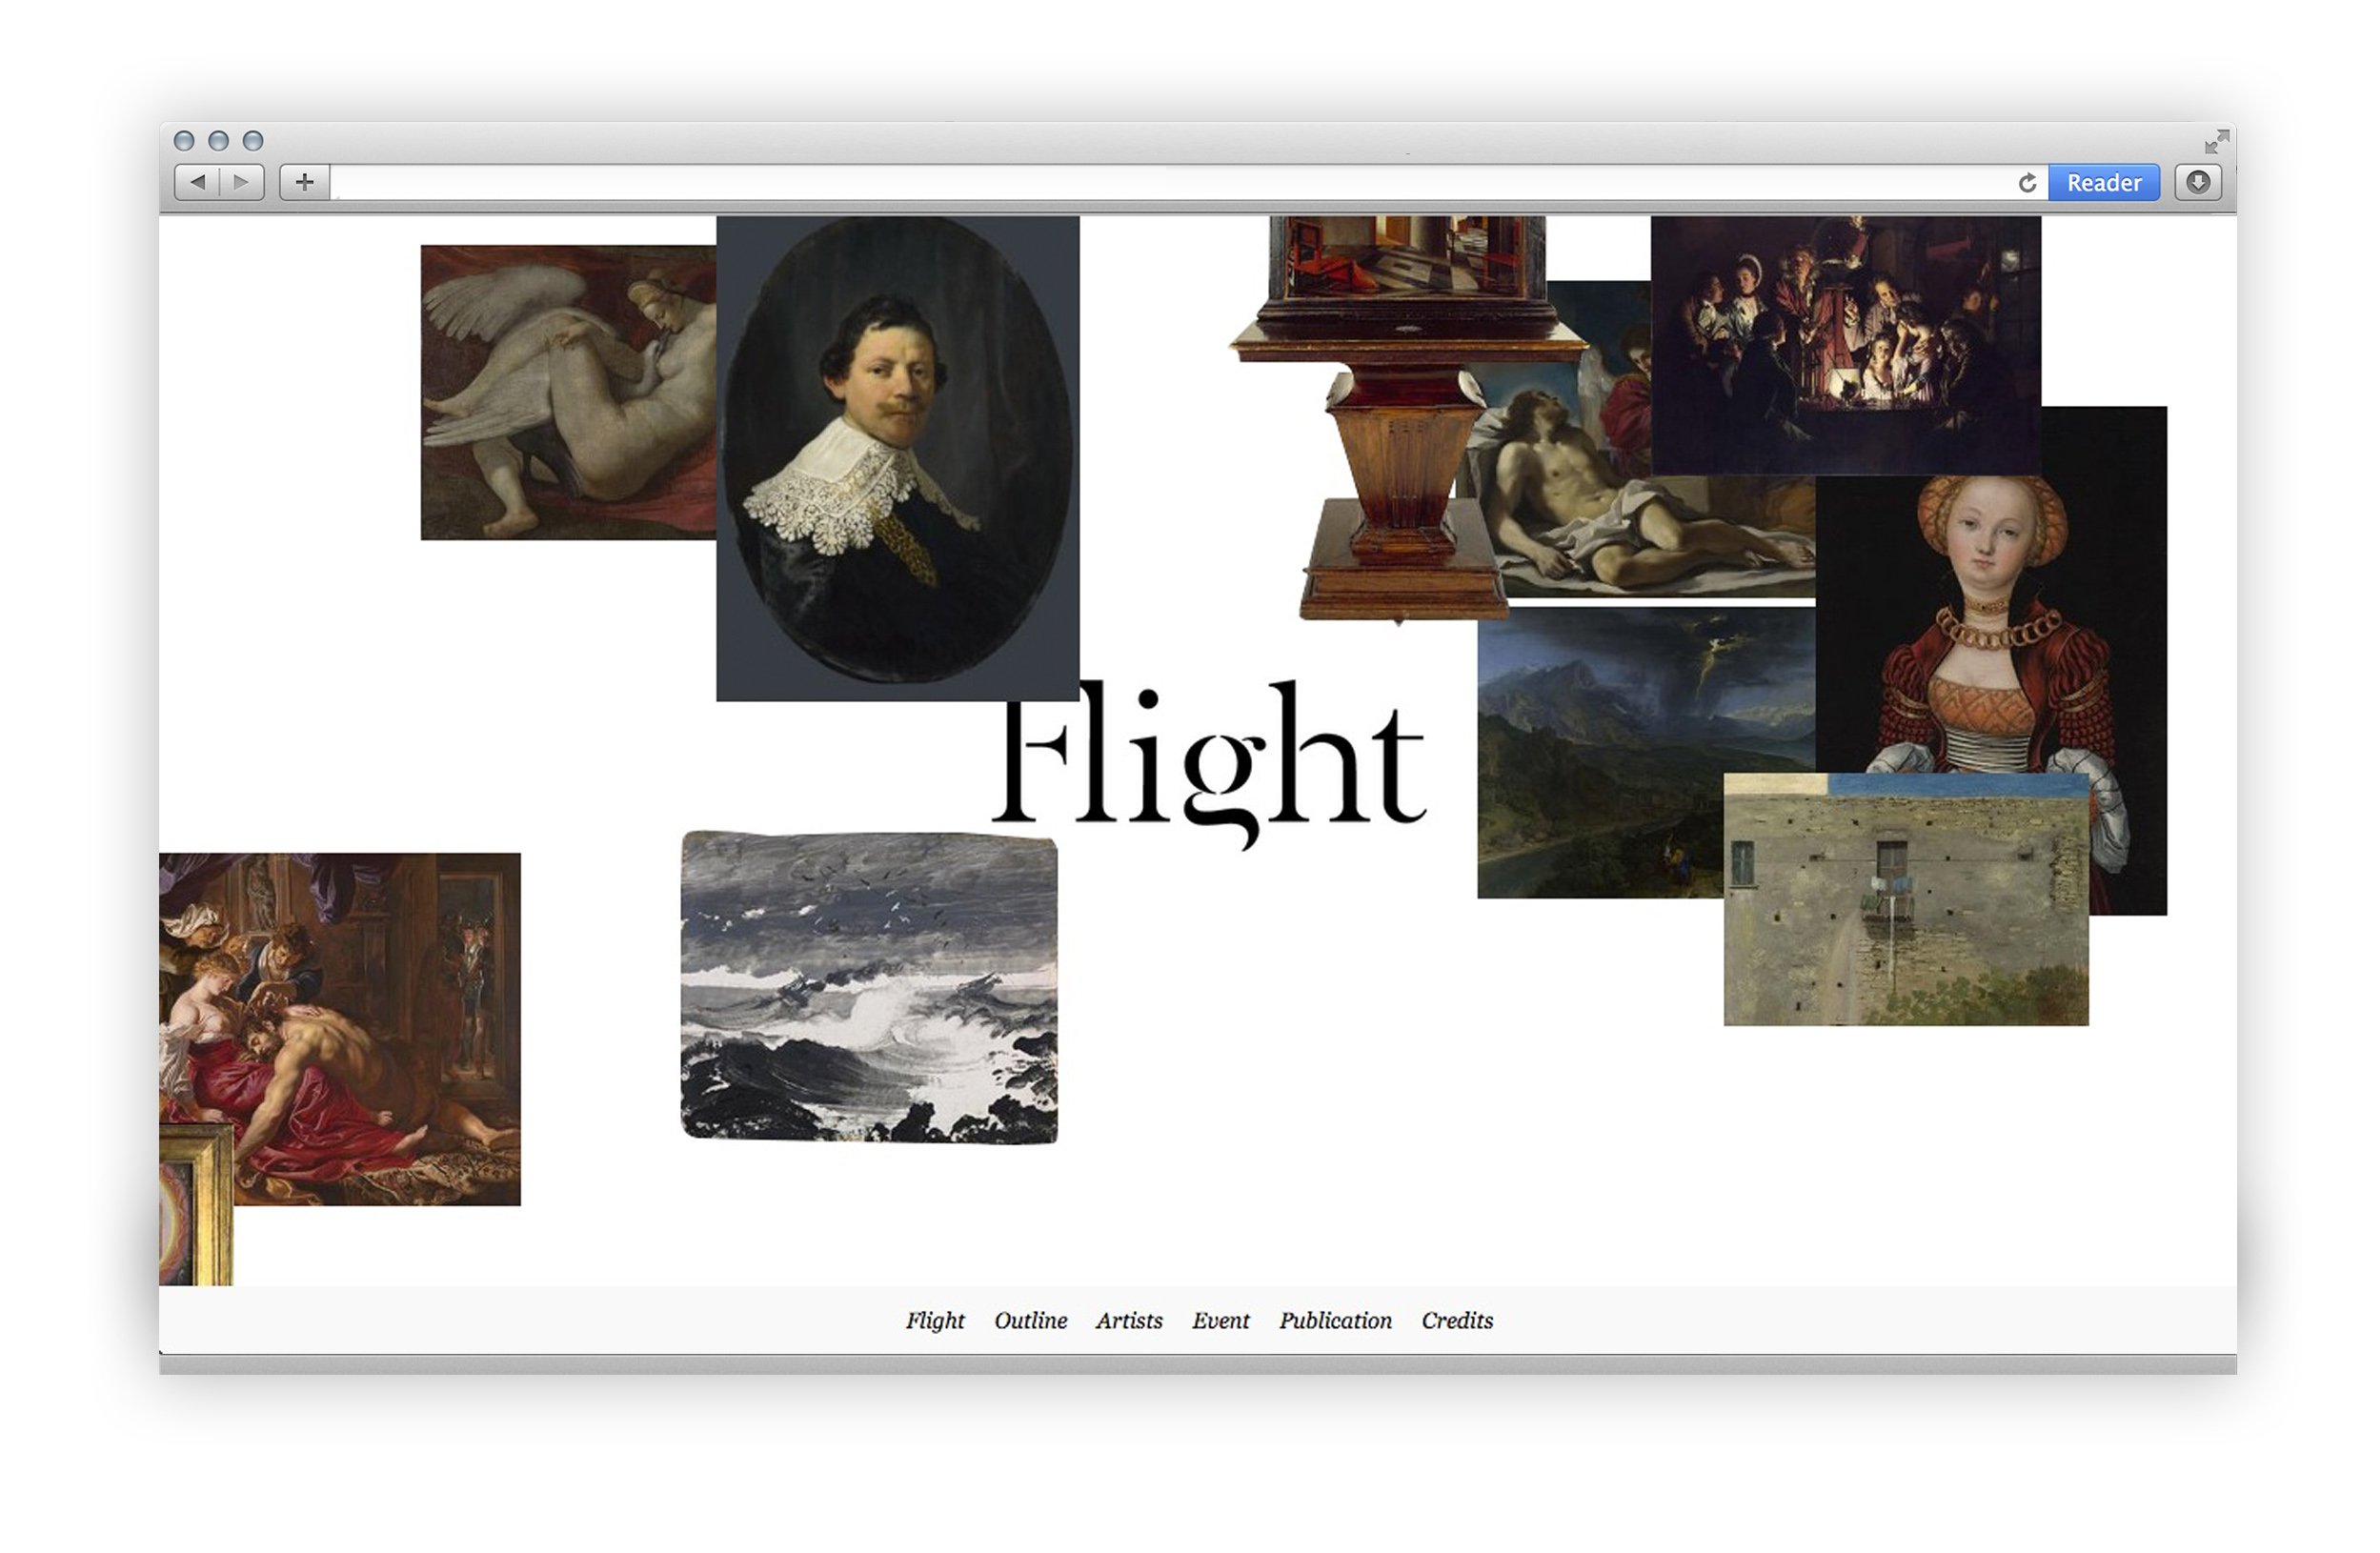 Flight Drawing Interpretations - Homepage